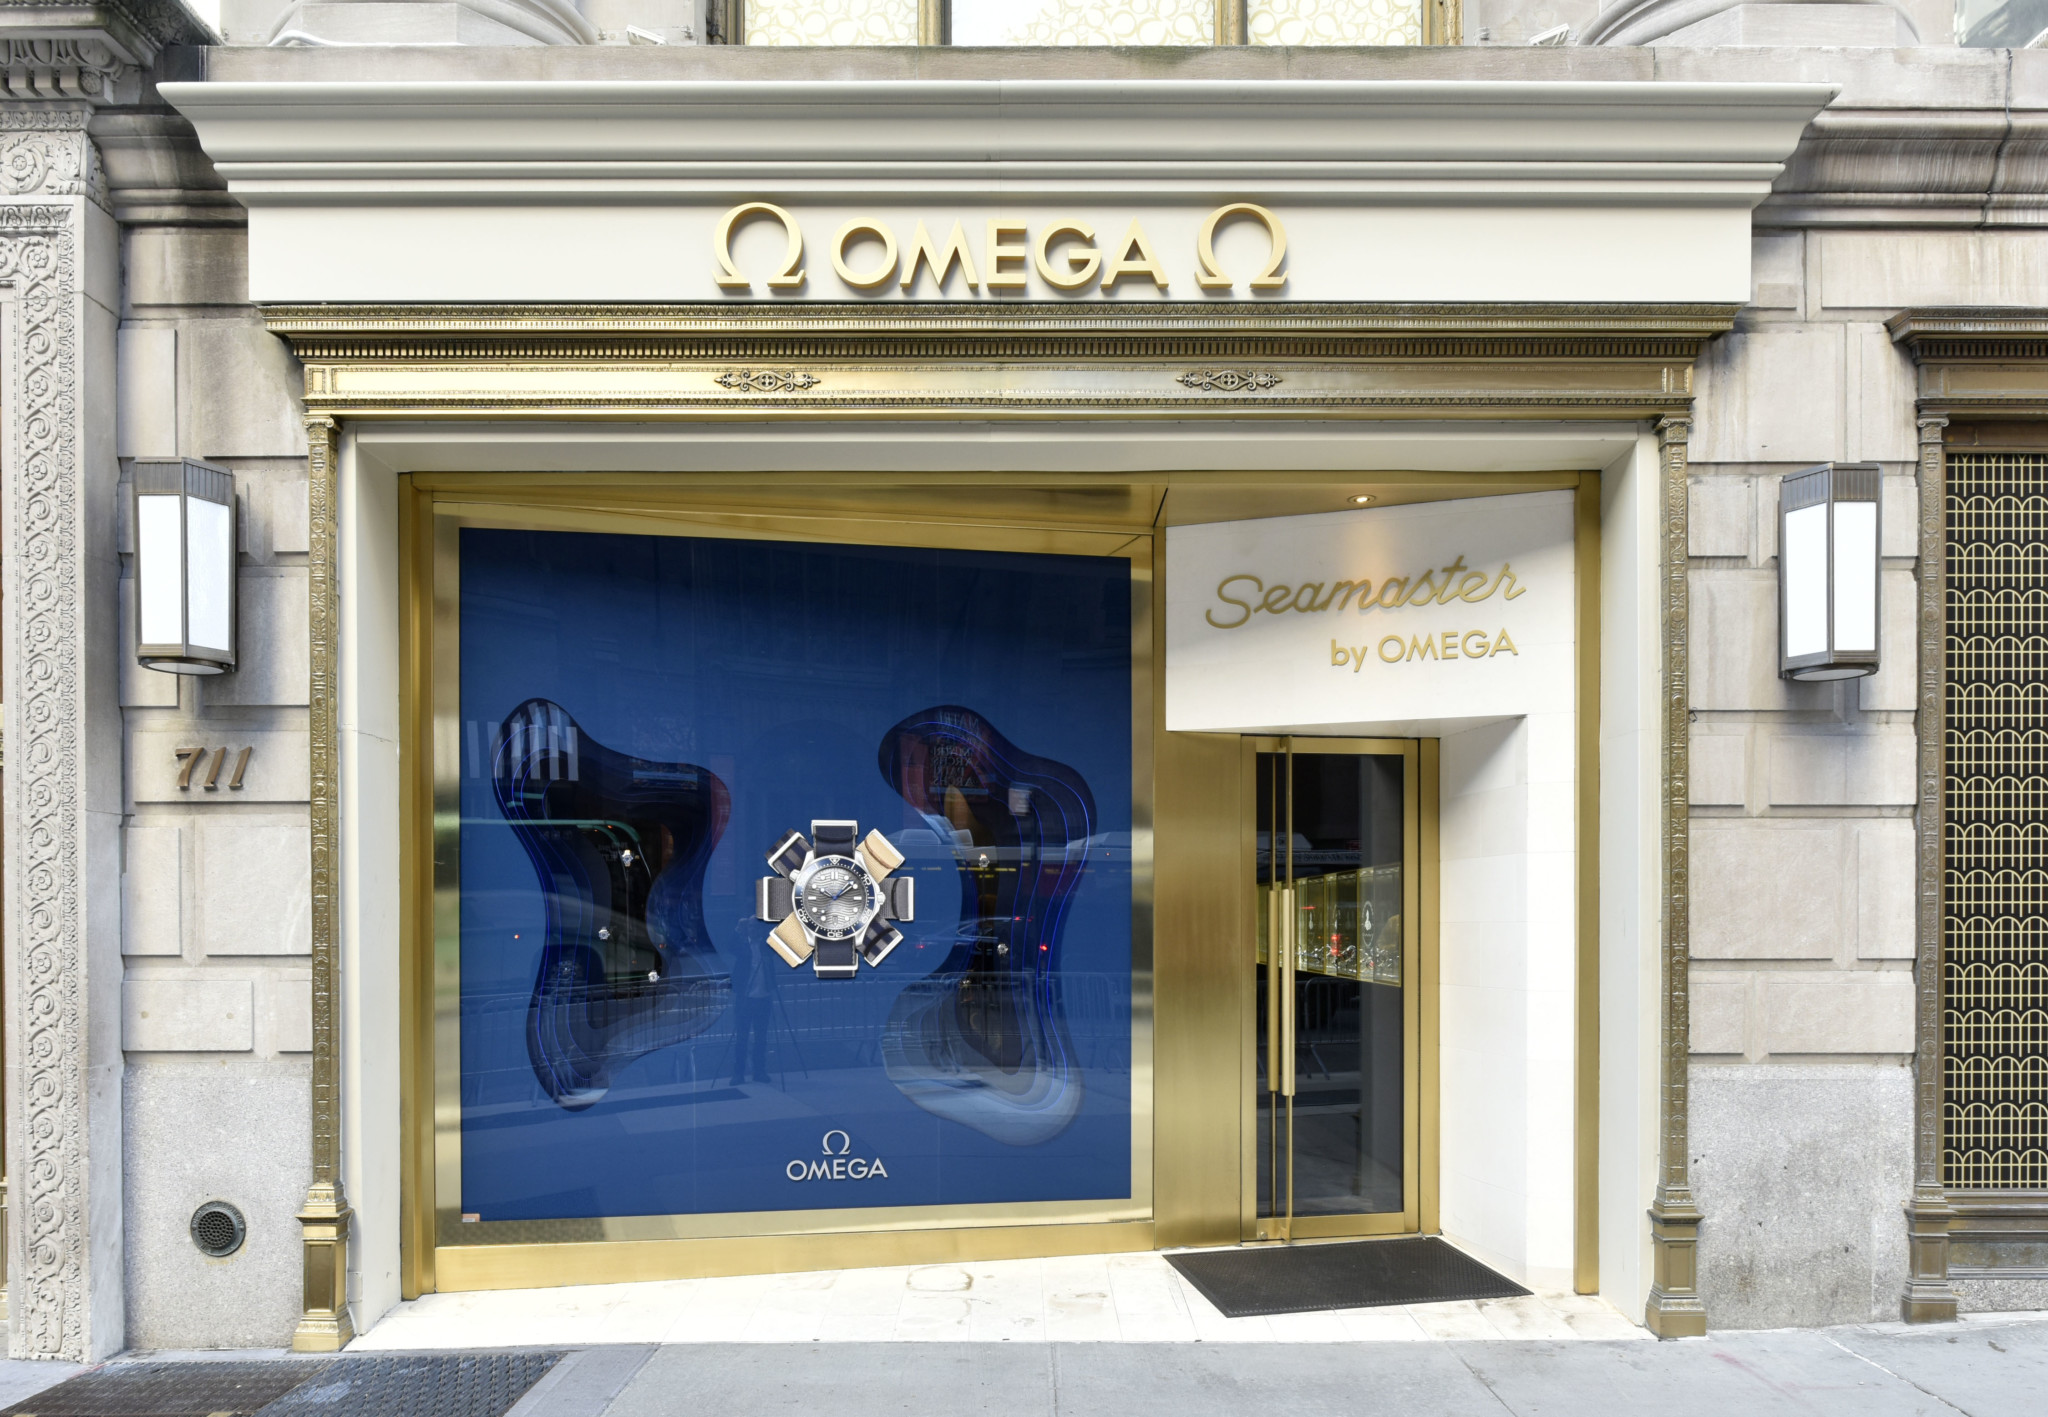 OMEGA Debuts New Seamaster Diver 300M Collection At The OMEGA Seamaster Pop-Up Boutique